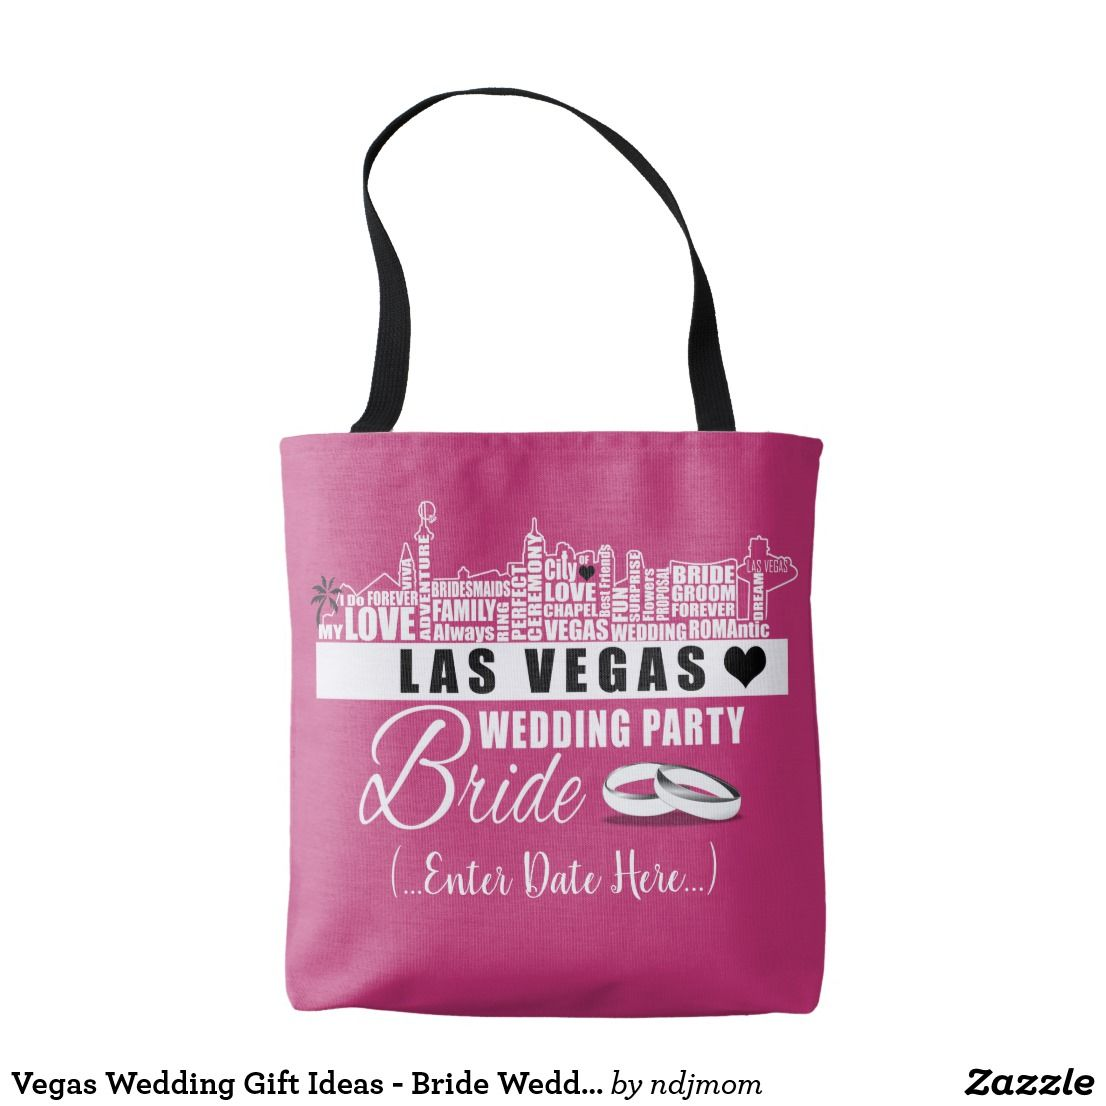 Vegas Wedding Gift Ideas - Bride Wedding Bag Take this bag with you ...